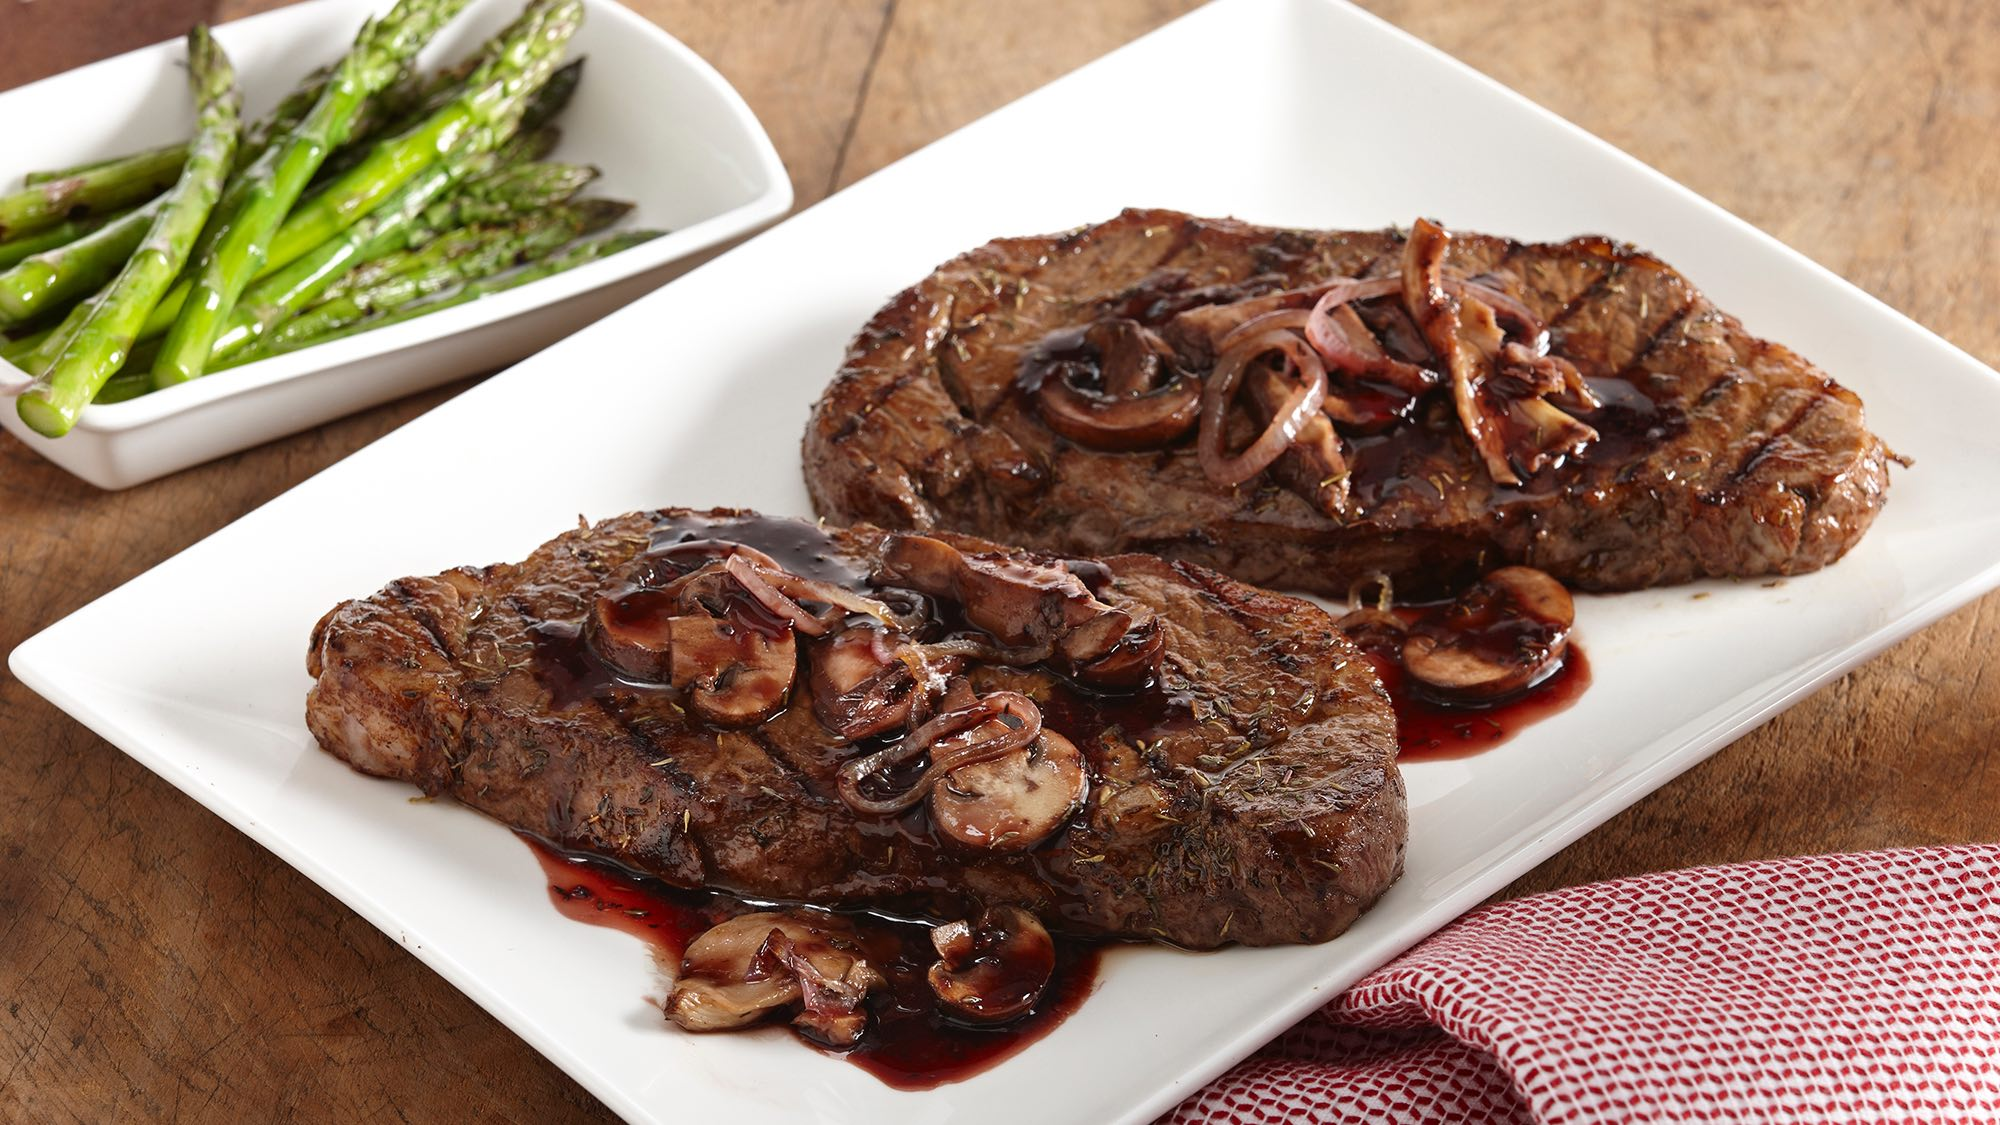 McCormick Steak and Wild Mushrooms in Red Wine Sauce